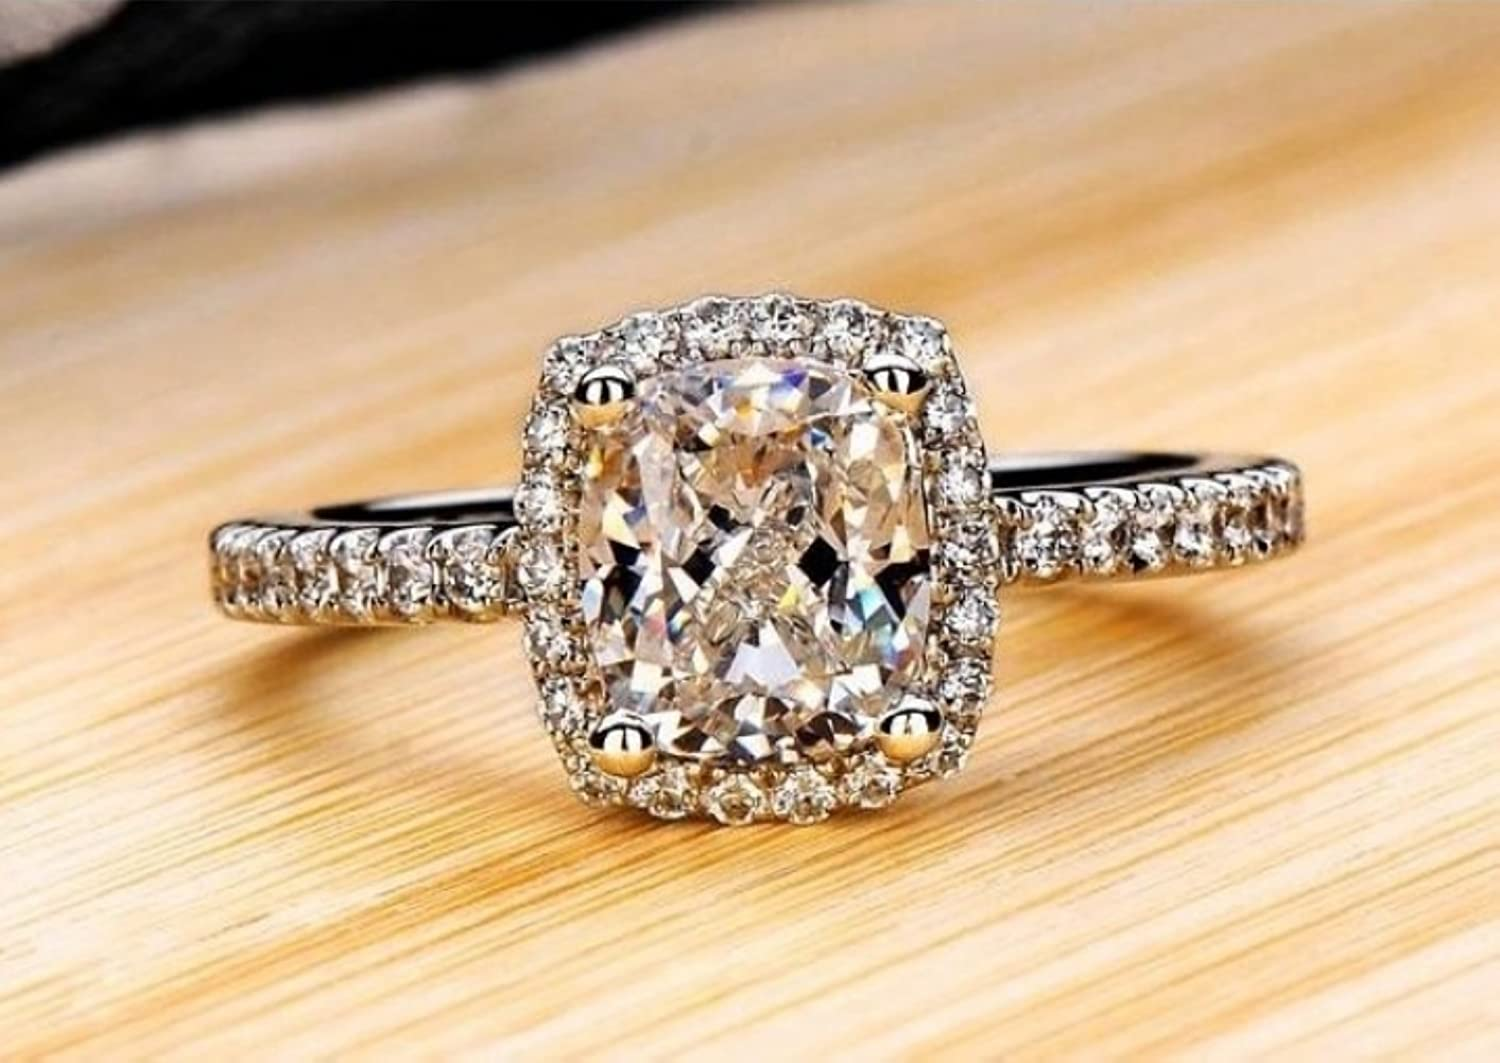 alternatives moissanite diamond diamondringalts vine classy made engagement ring rings labdiamond em to twisted save you man money